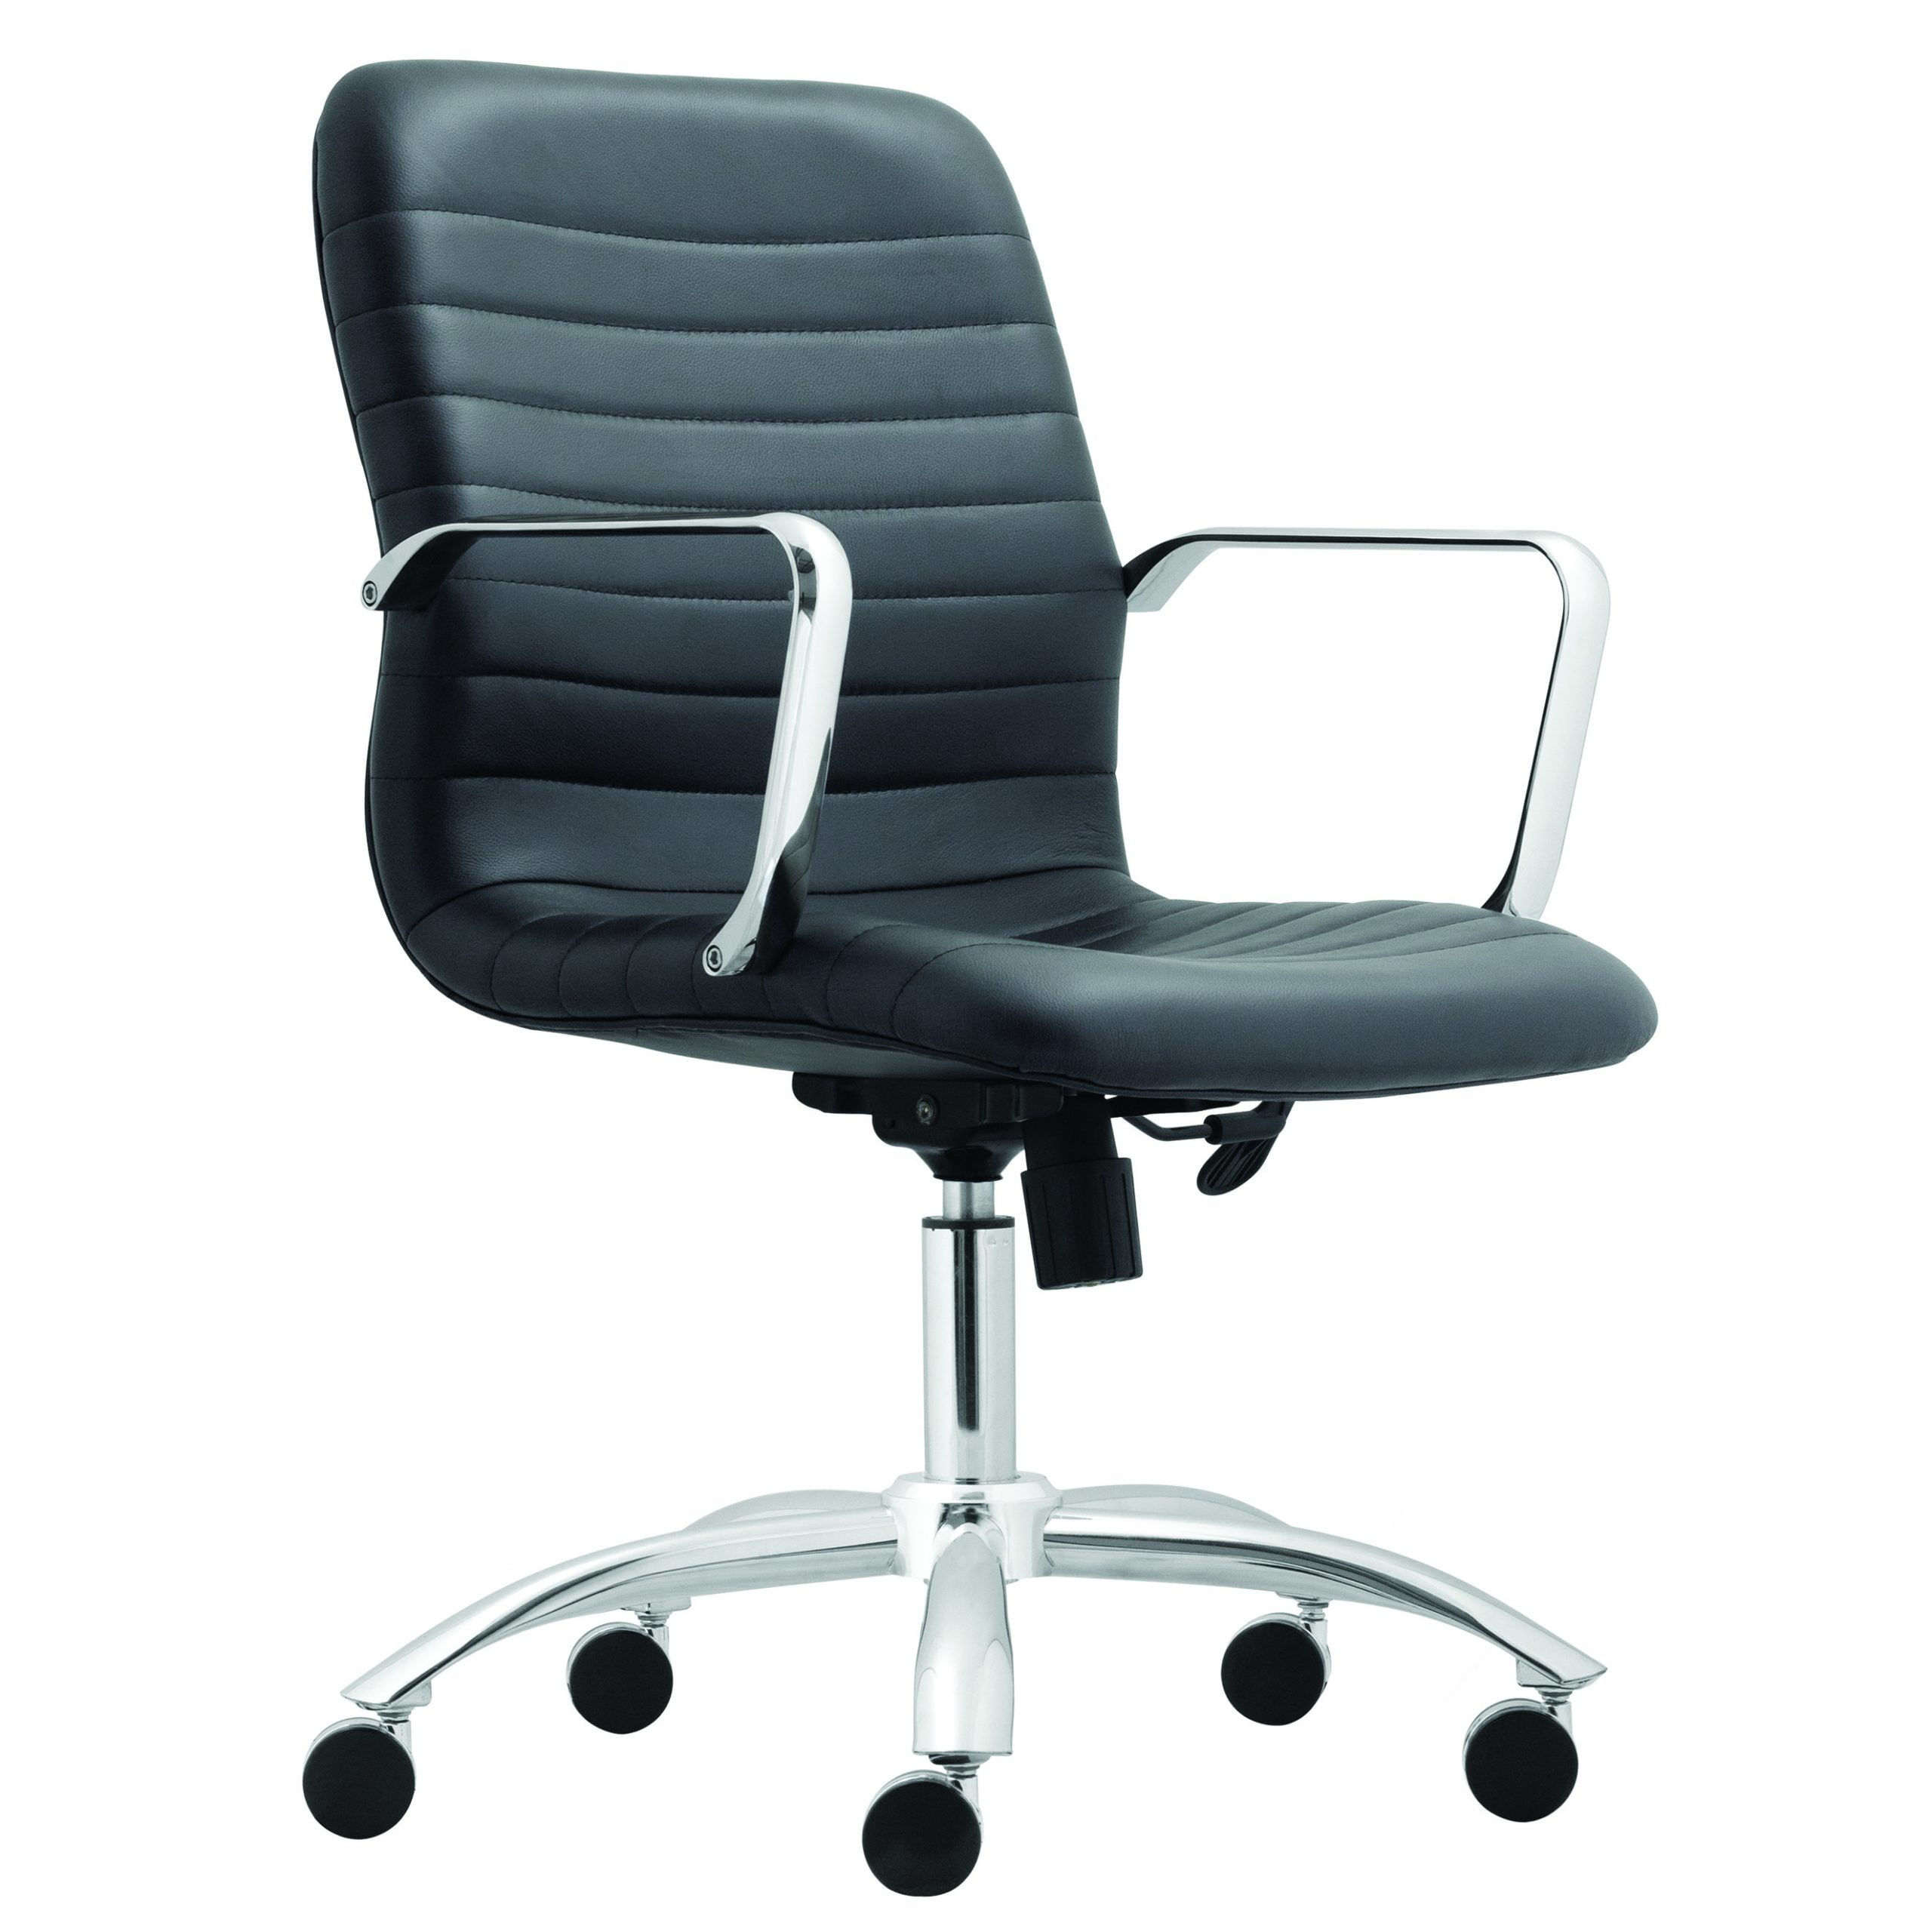 Savona Task Chair with Metal Arms - Black